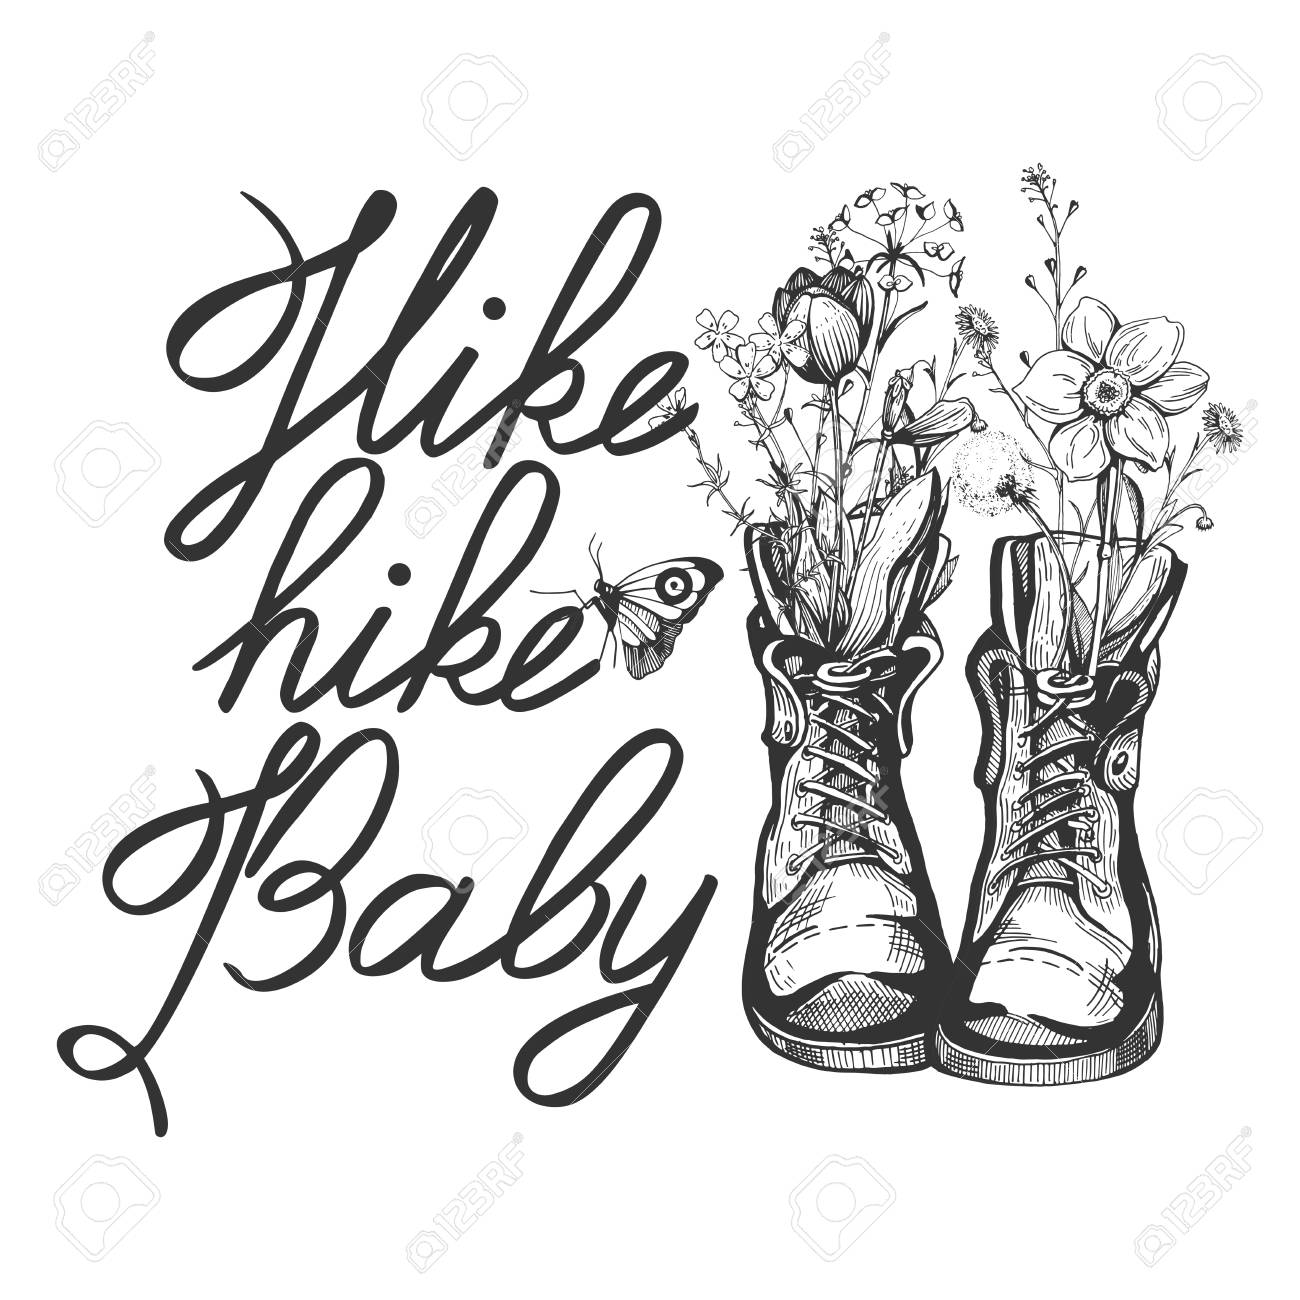 Vector illustration of an old vintage boots filled with wild field flowers. Calligraphy motivational quote inscription Hike baby. Hand drawn engraving style. - 103066288